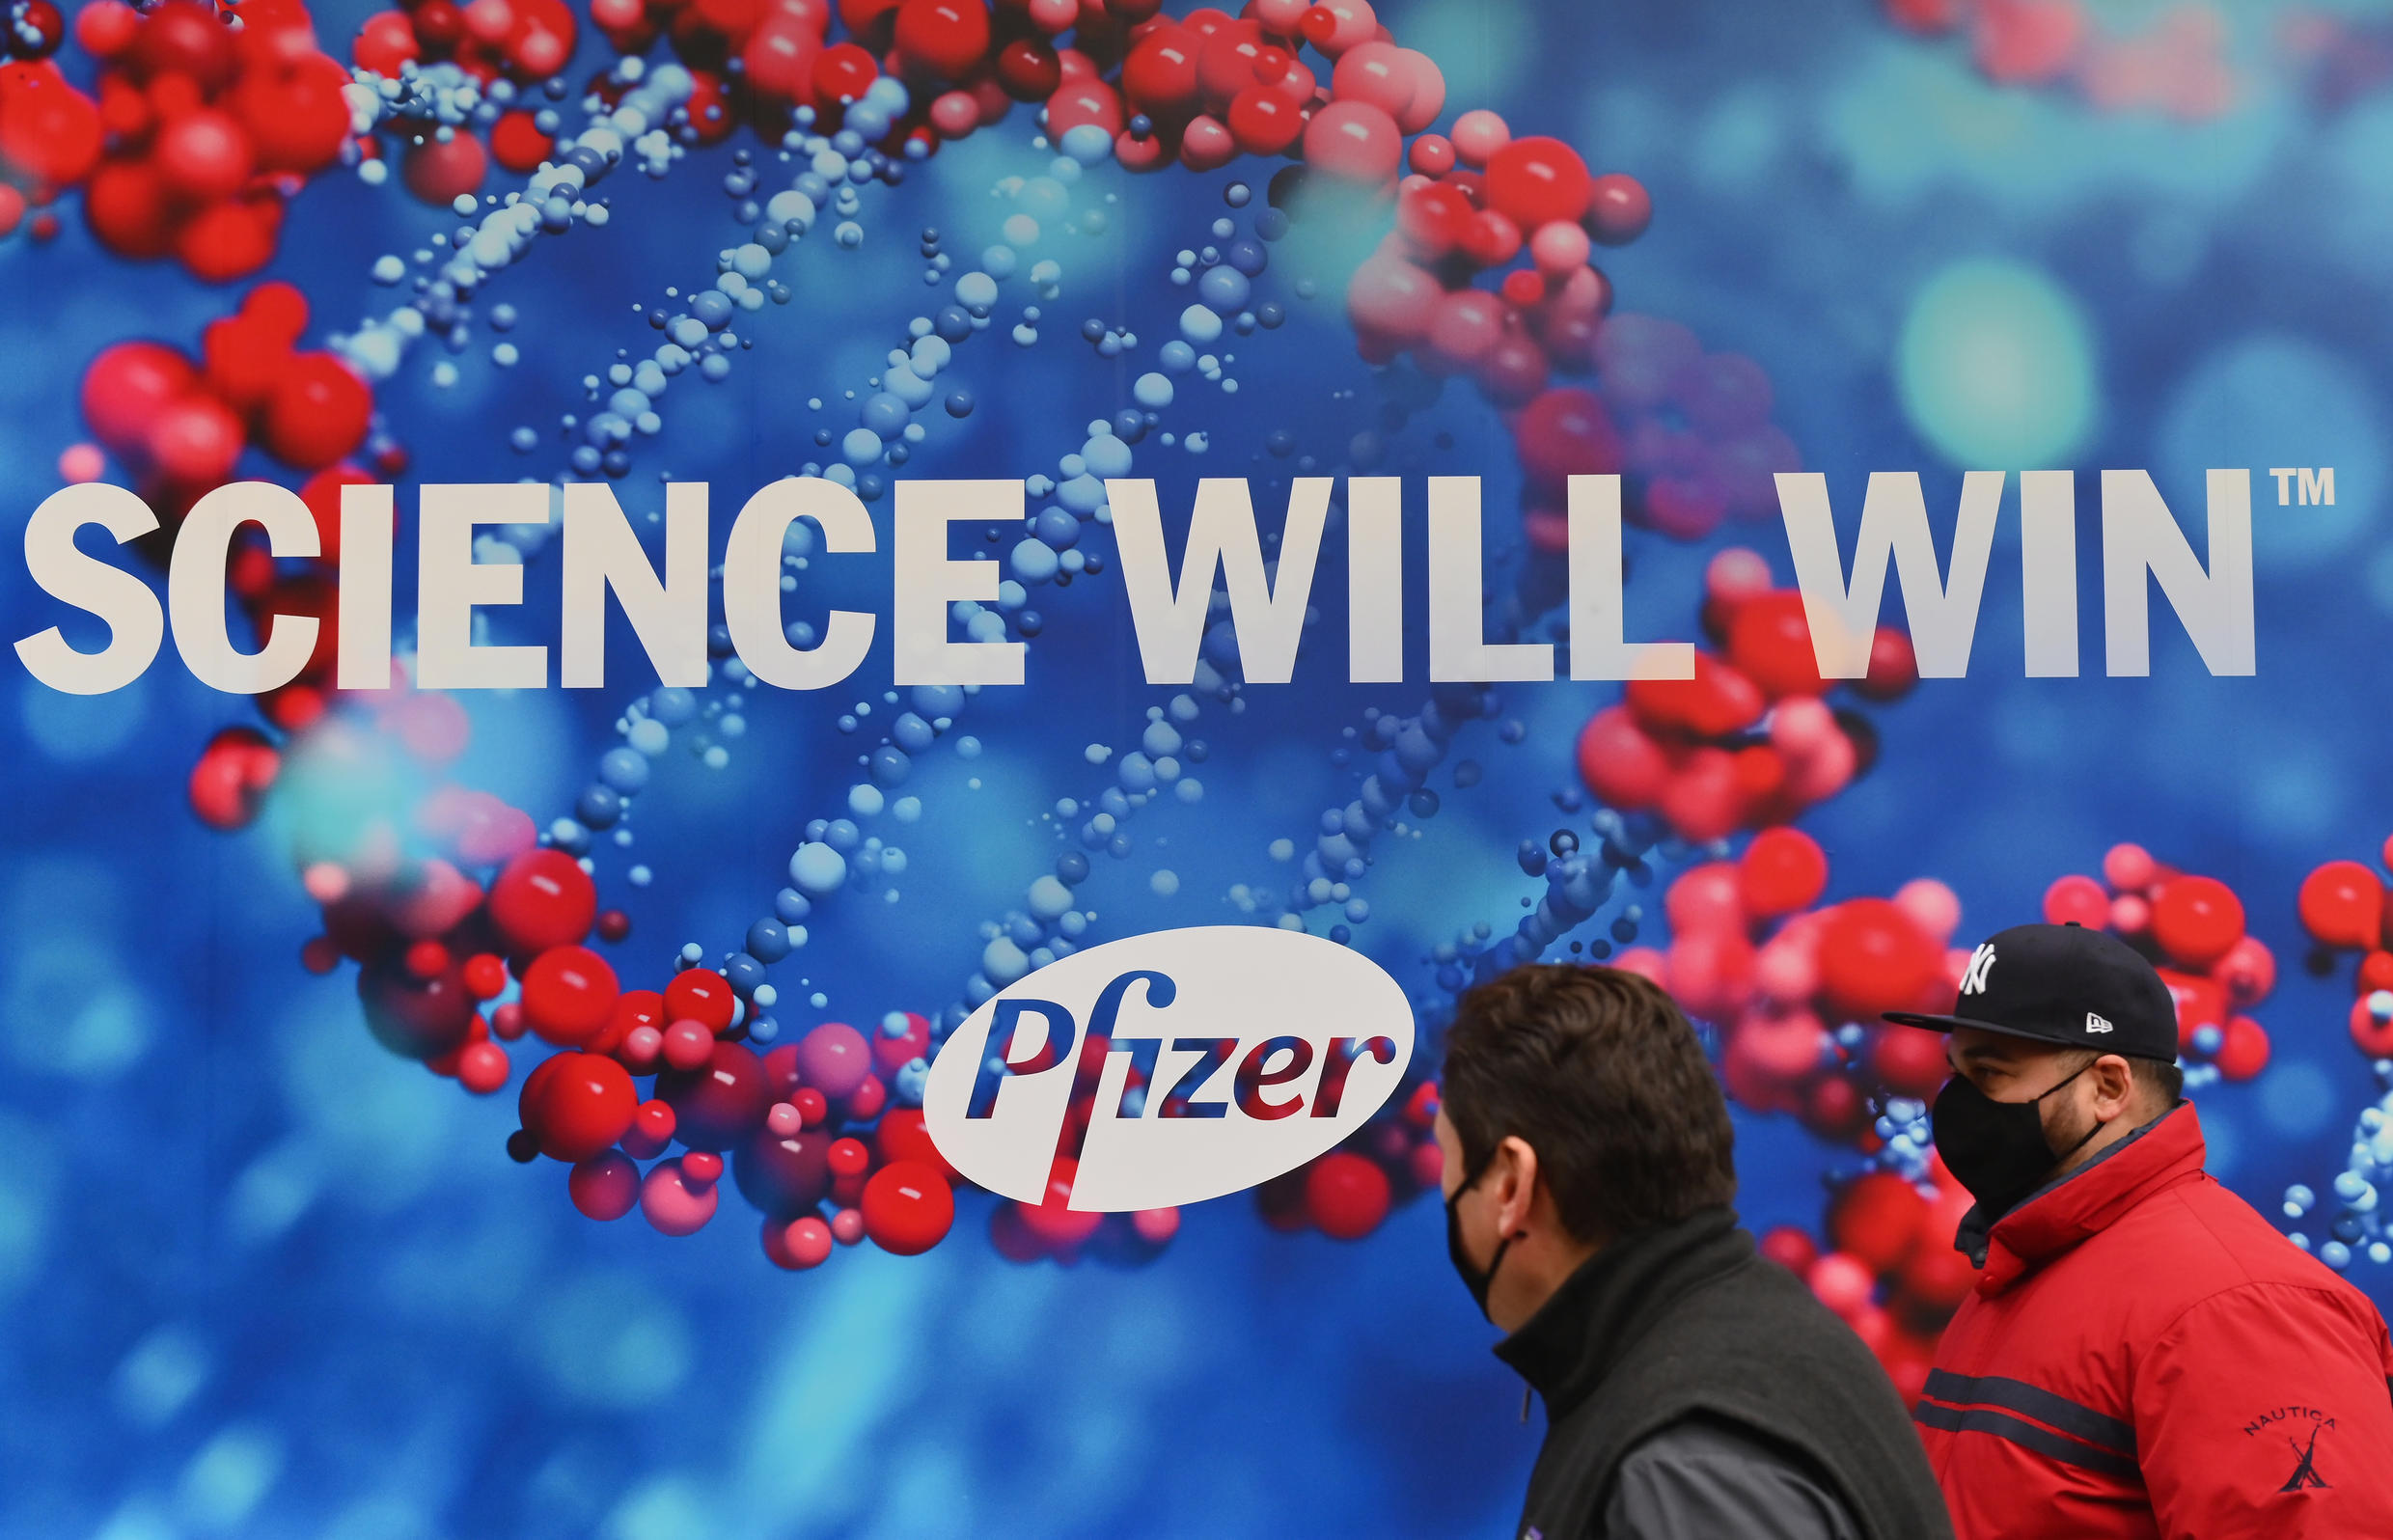 The biggest takeaway for experts from the latest data is that Pfizer-BioNTech vaccine works even better than hoped